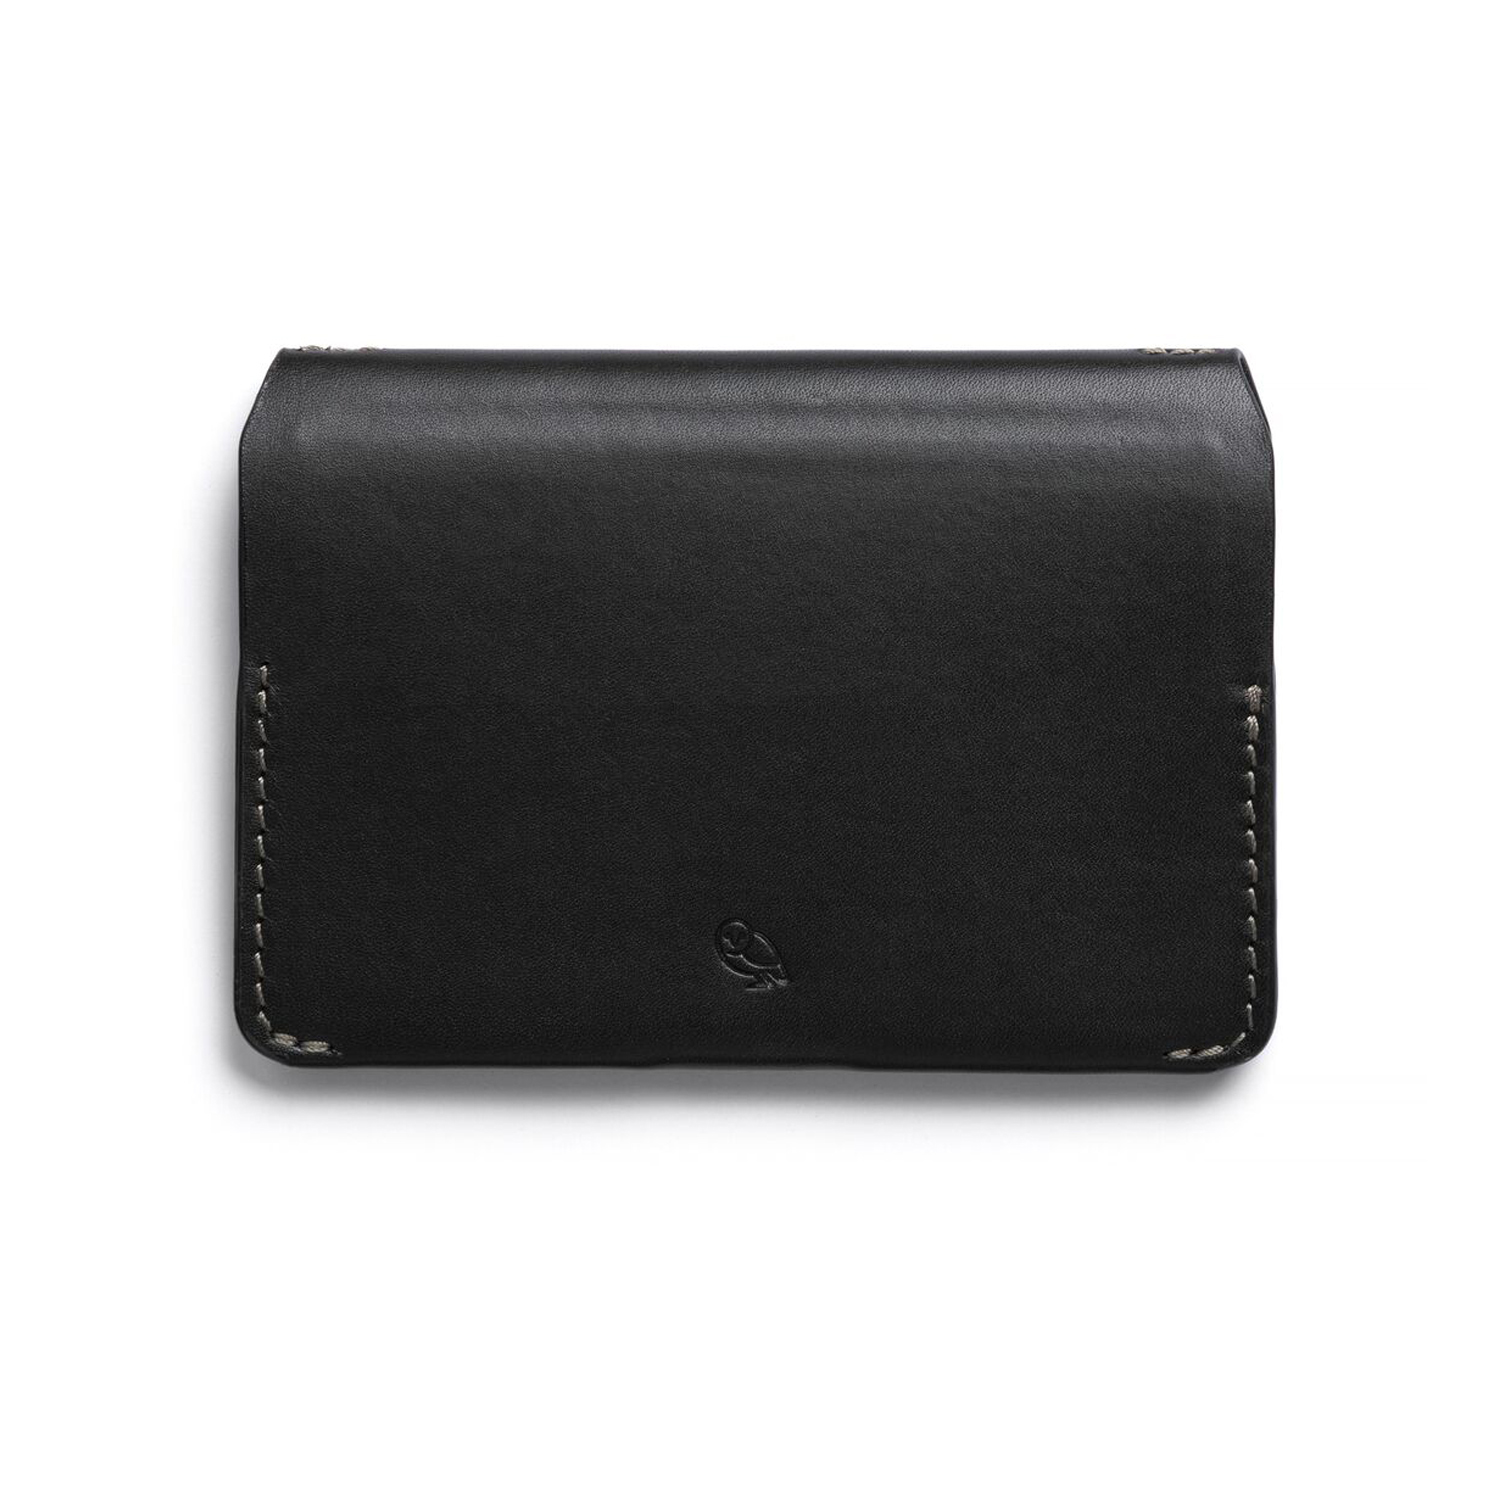 657c2aa88a610 Buy Bellroy Card Holder - Black in Singapore & Malaysia - The Wallet ...